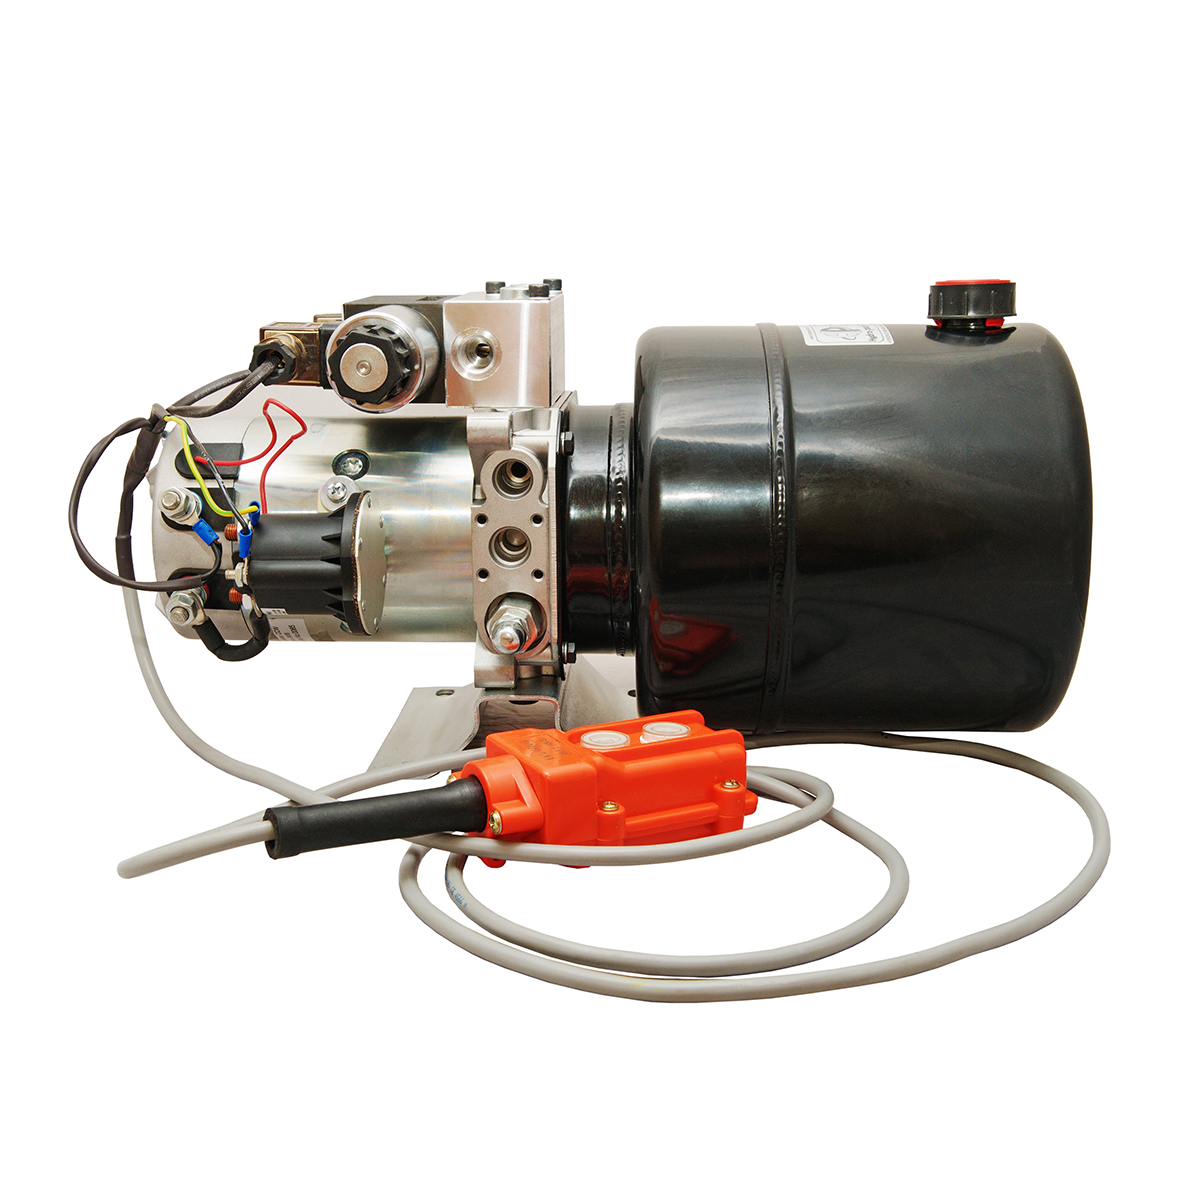 double acting 12 quarts hydraulic power unit 12V DC by Hydro-Pack